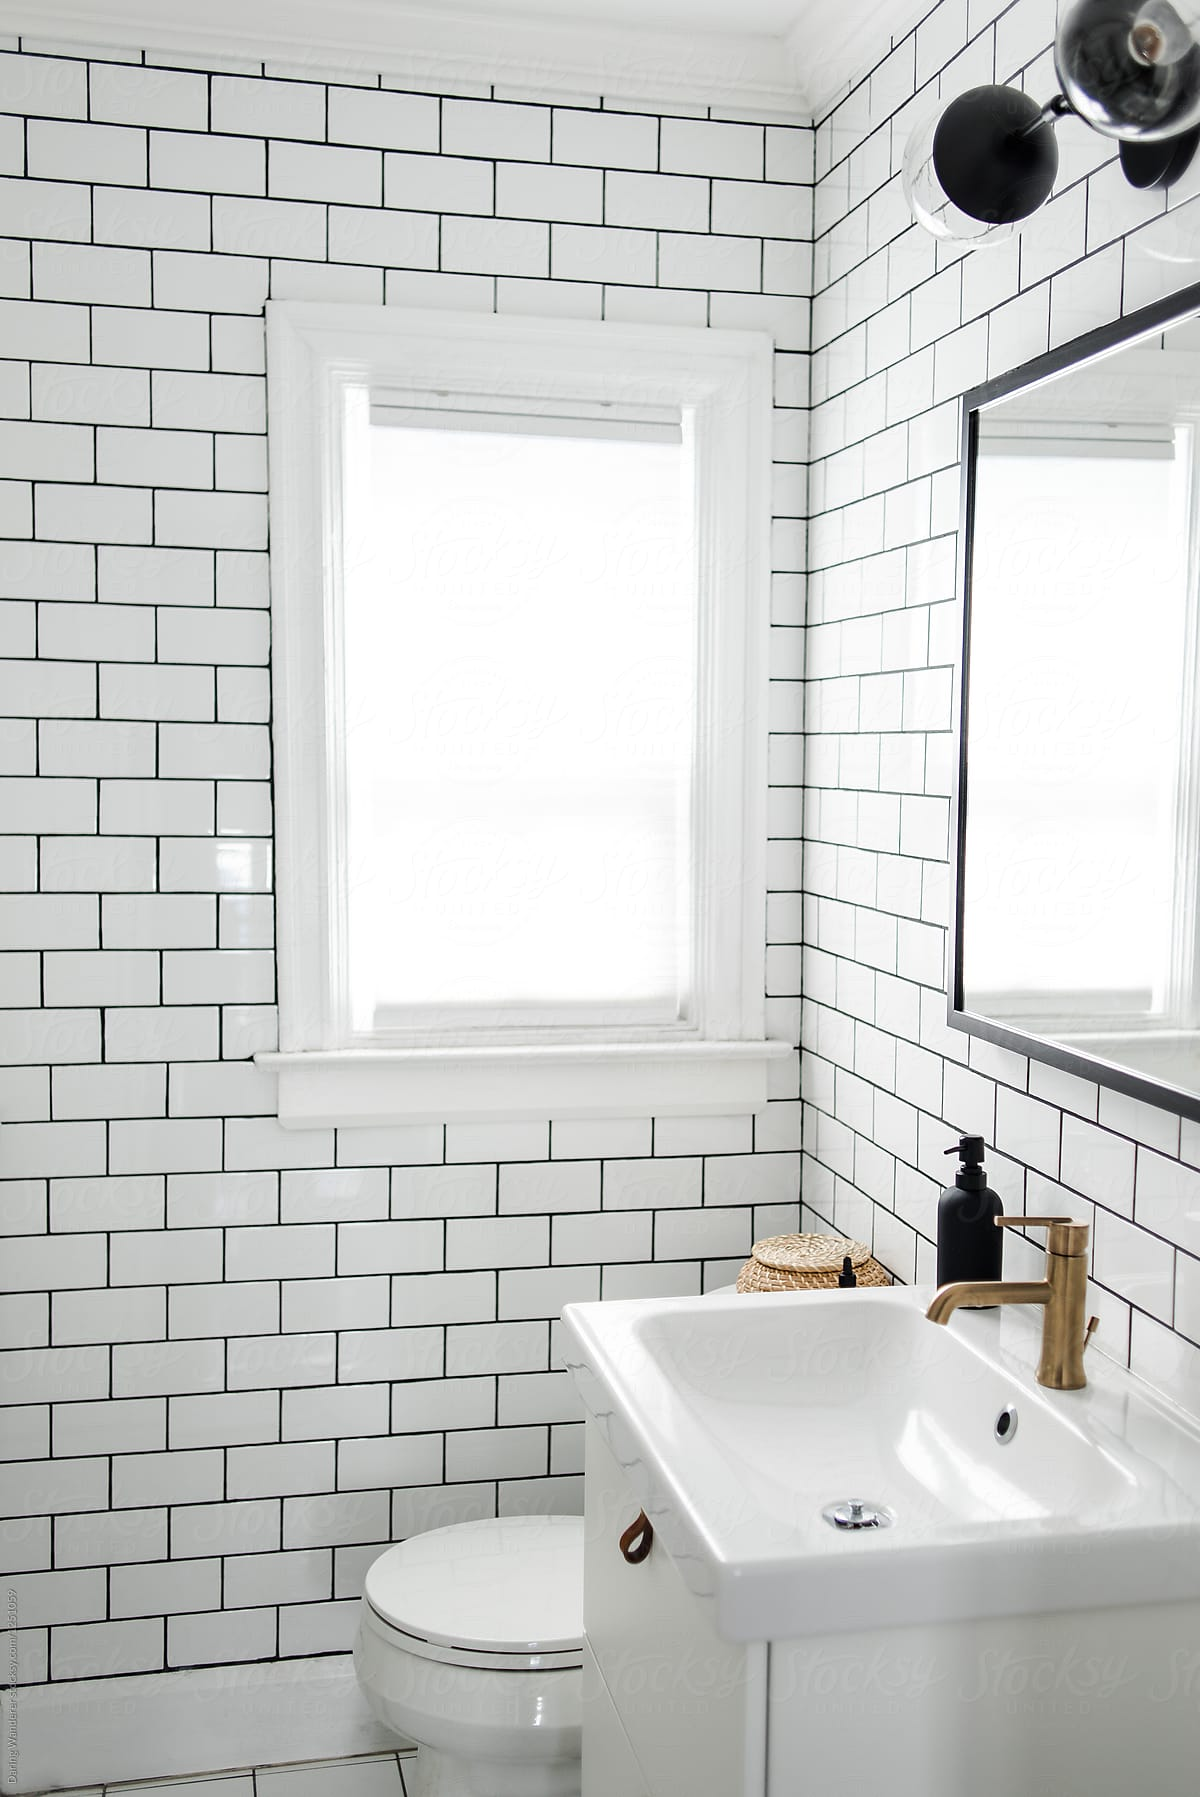 minimalist small bathroom renovation with white subway tile and ikea cabinet by jess craven for stocksy united